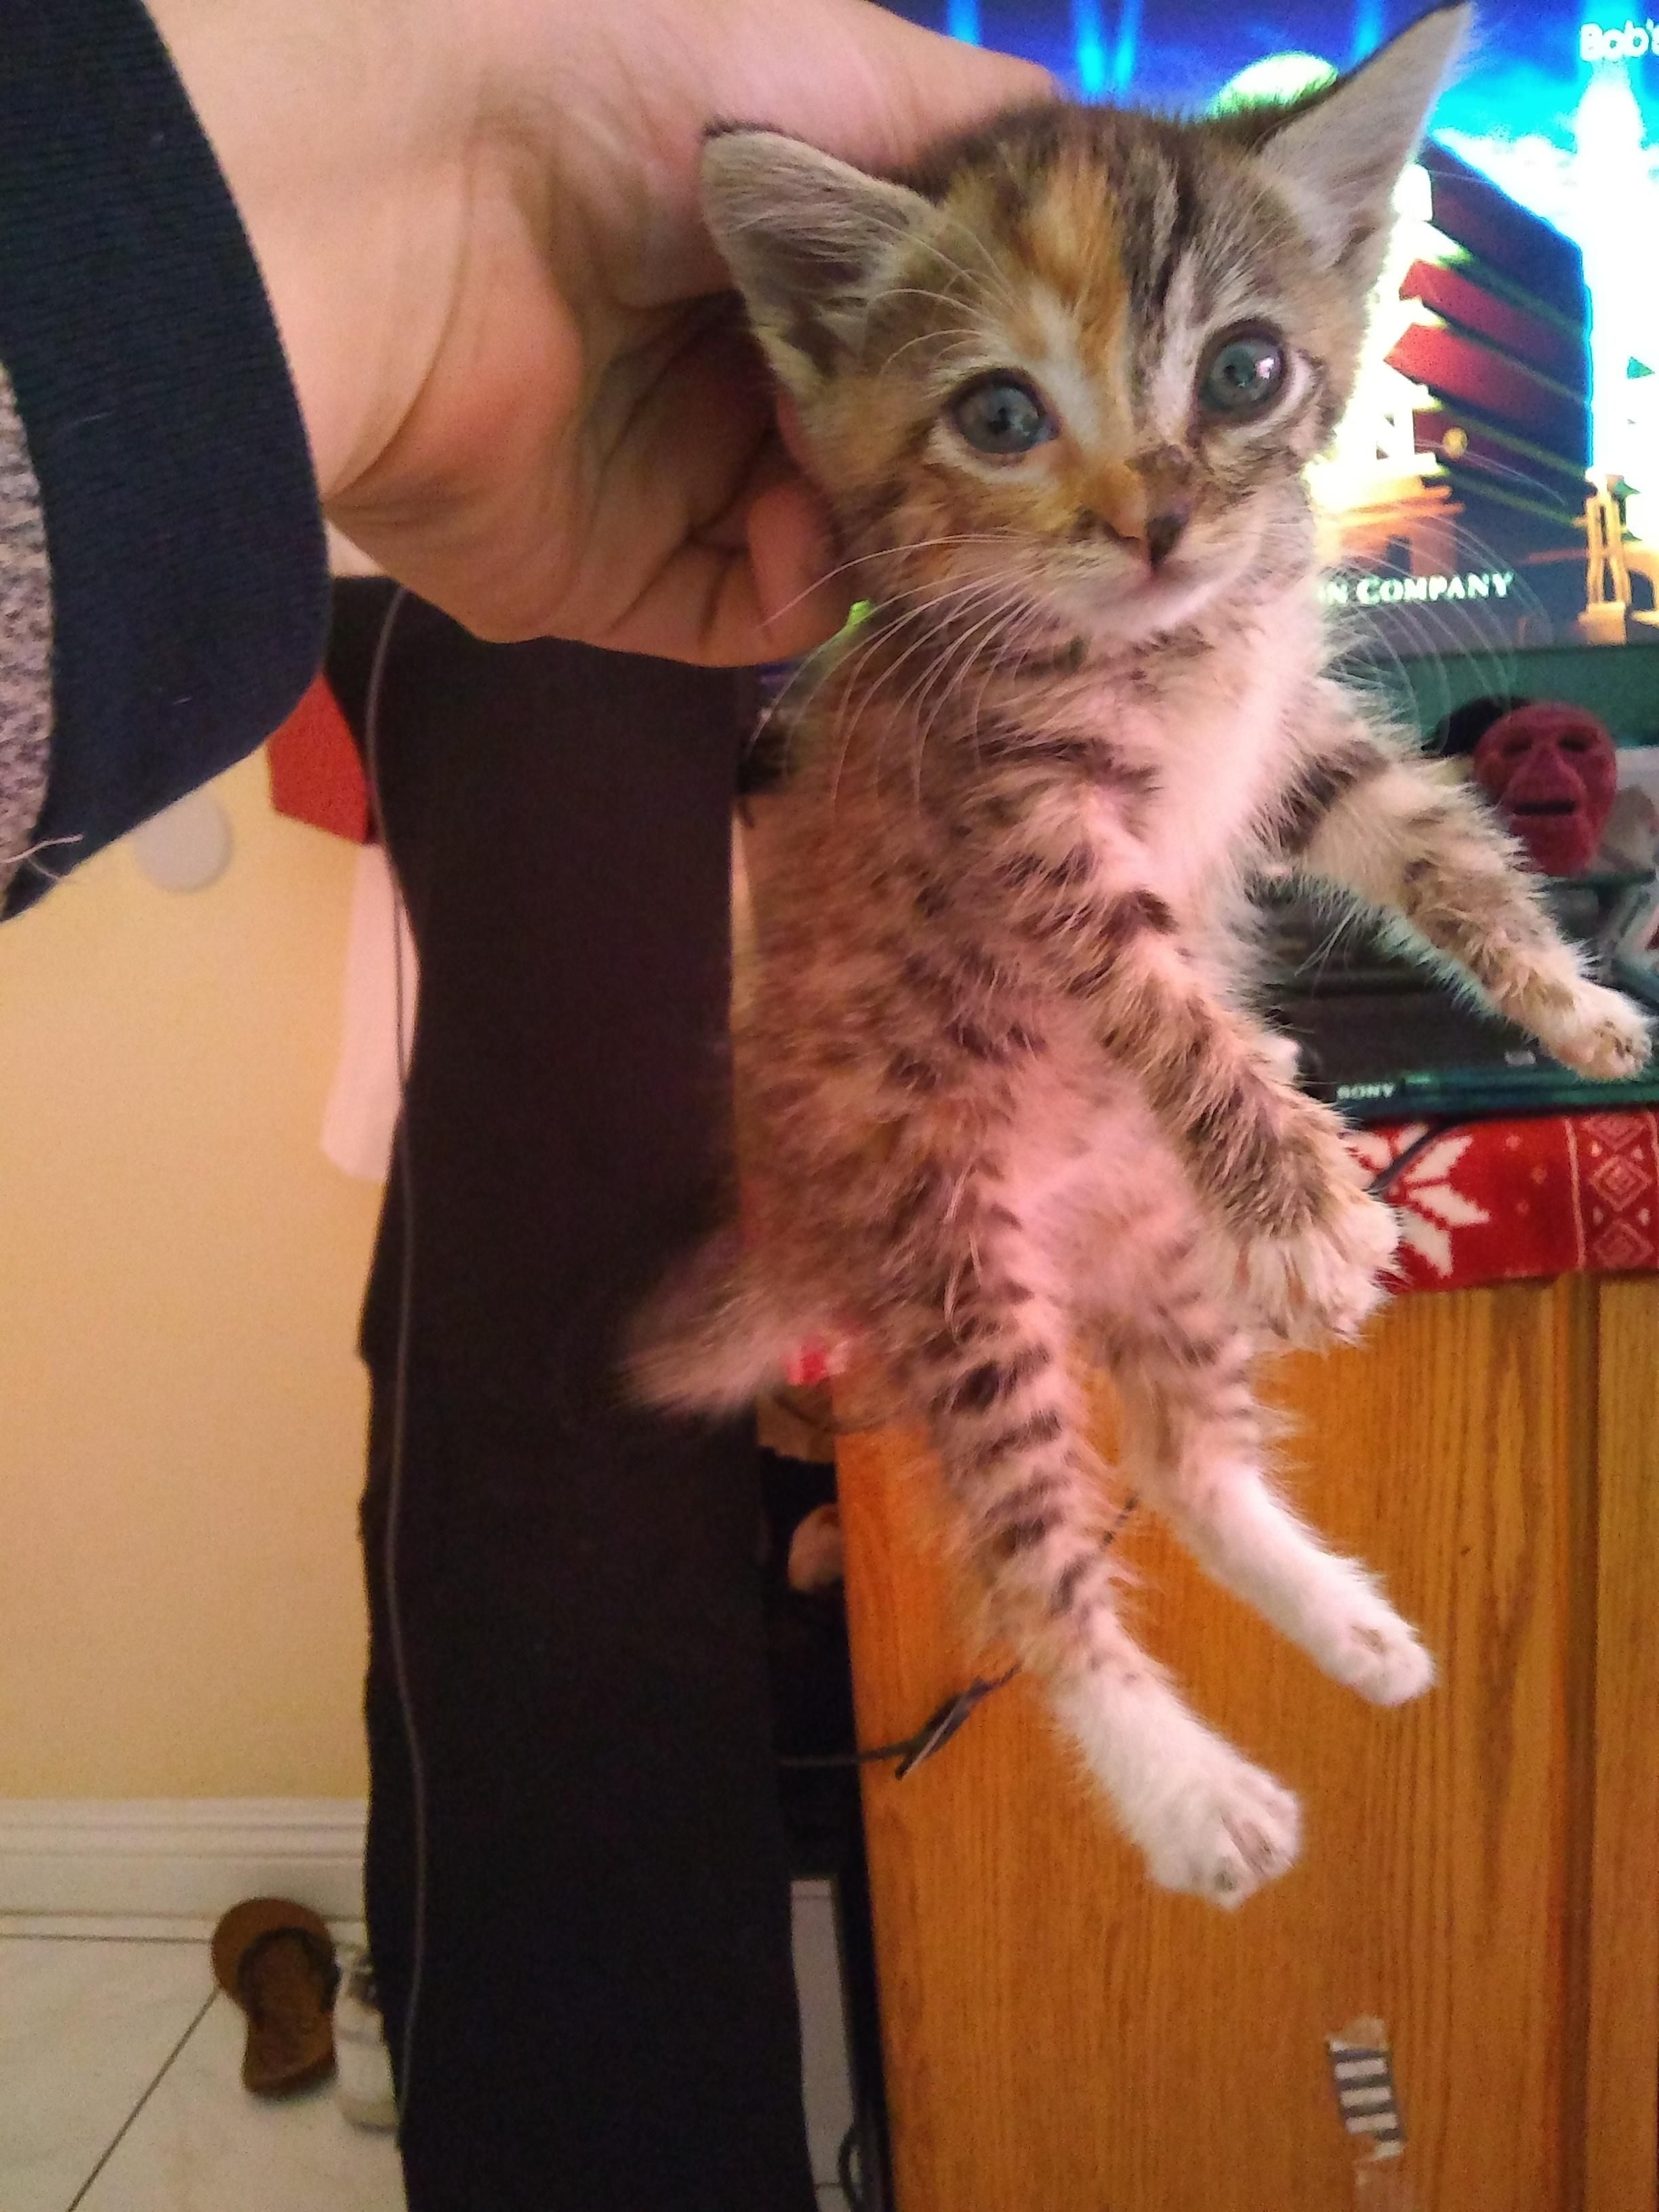 Could Anybody Help Me Identify The Breed Of My Kitten Kitten Cats Breeds